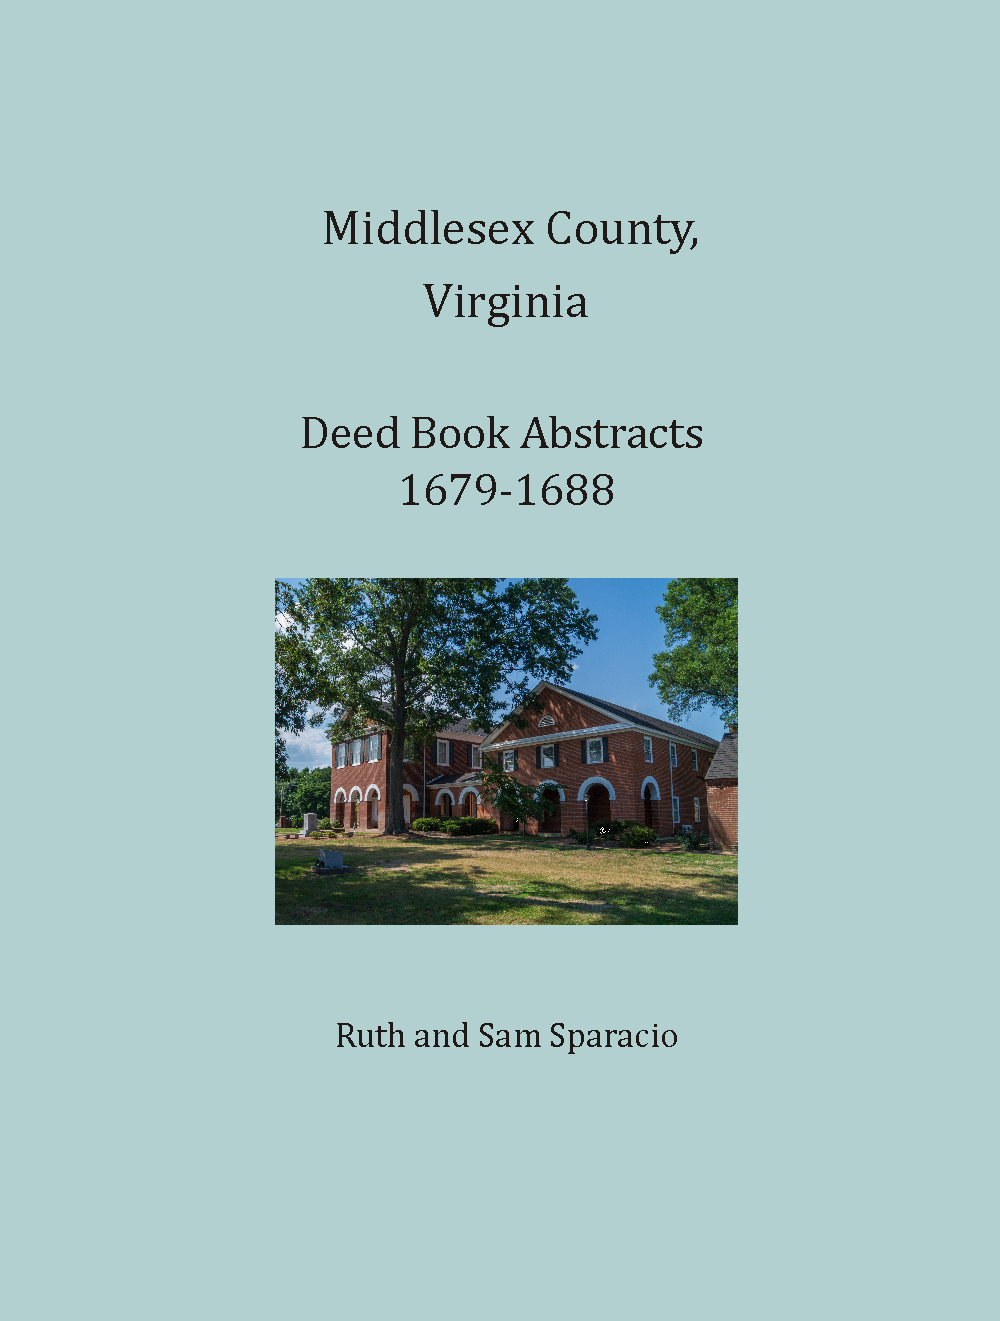 Middlesex County, Virginia Deed Book, 1679-1688